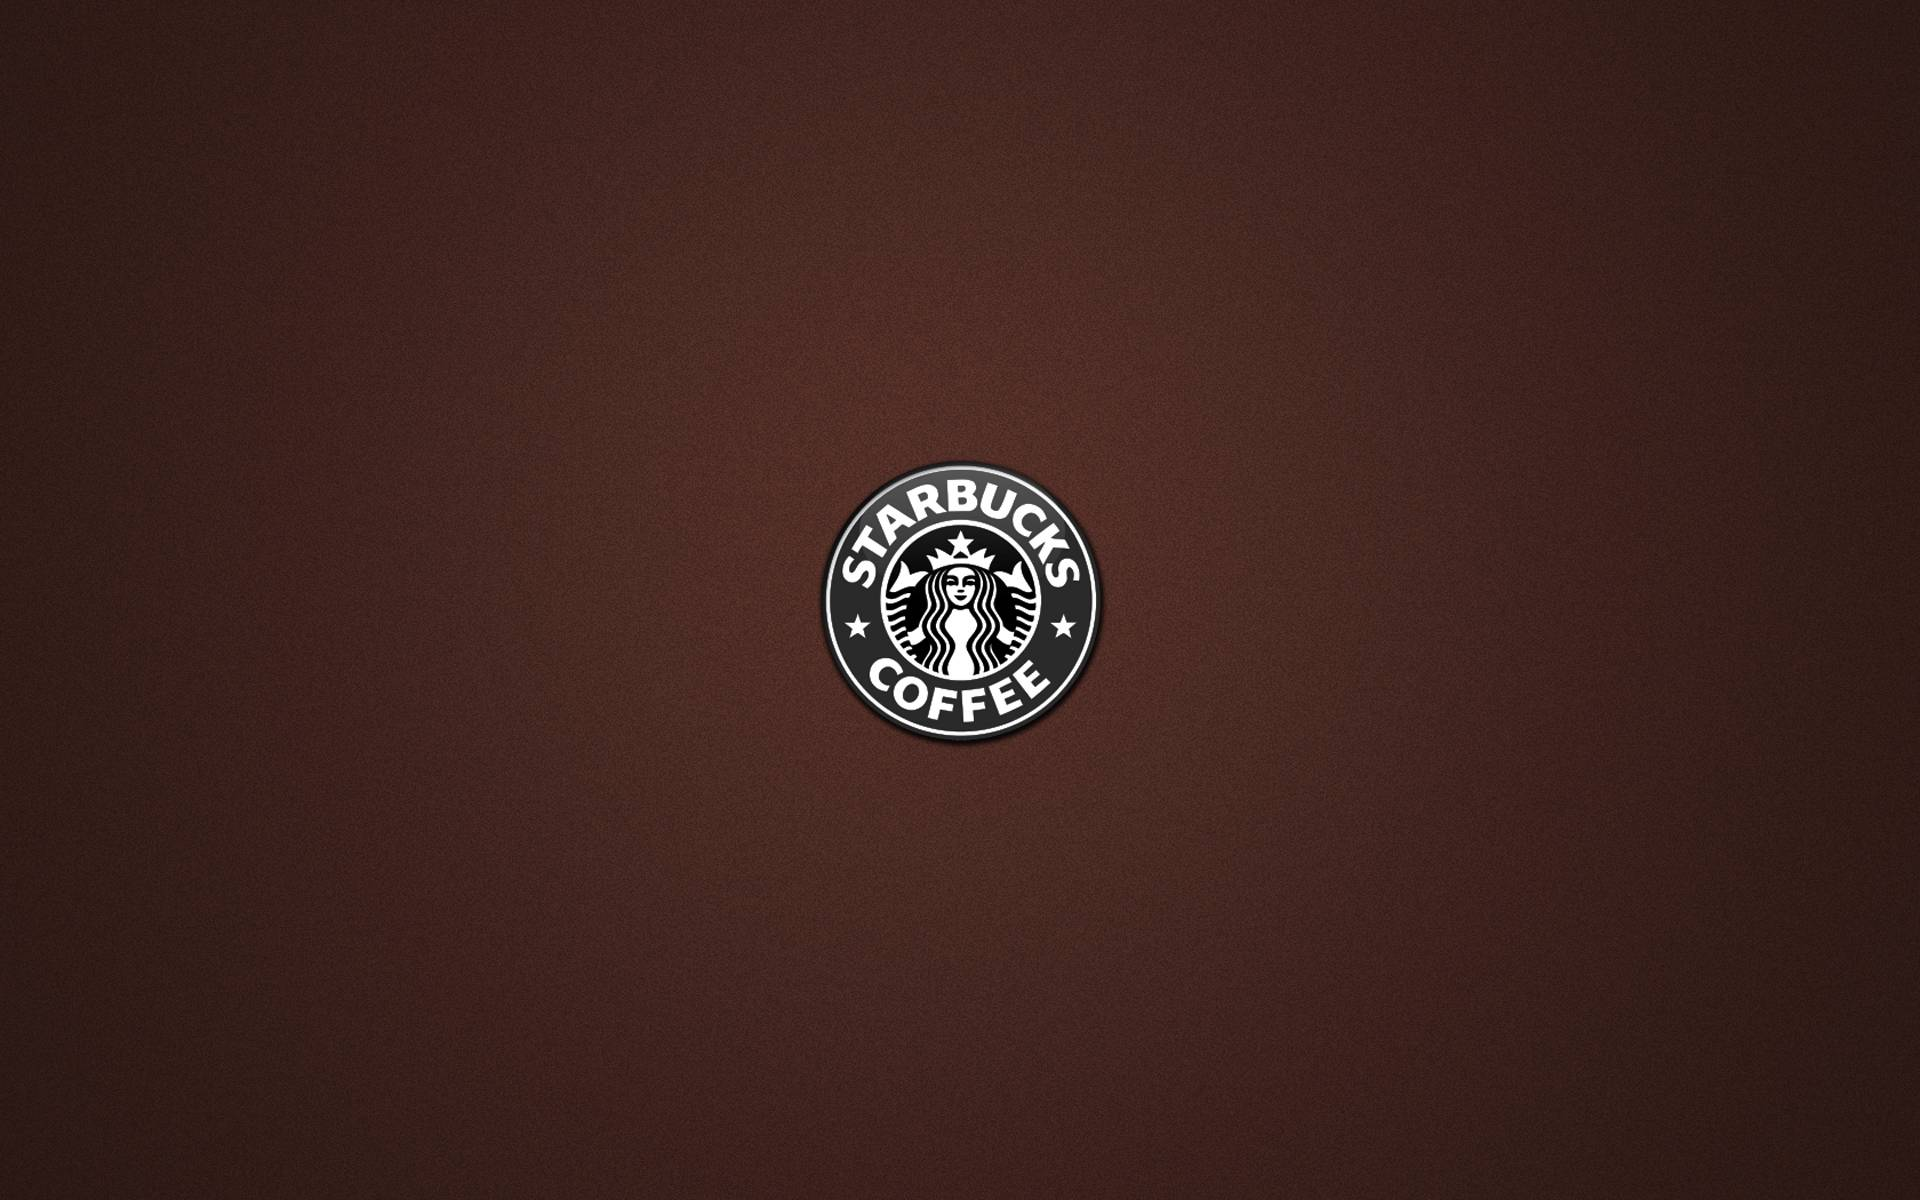 Starbucks Background Photos, 31 Background Vectors and PSD Files ...